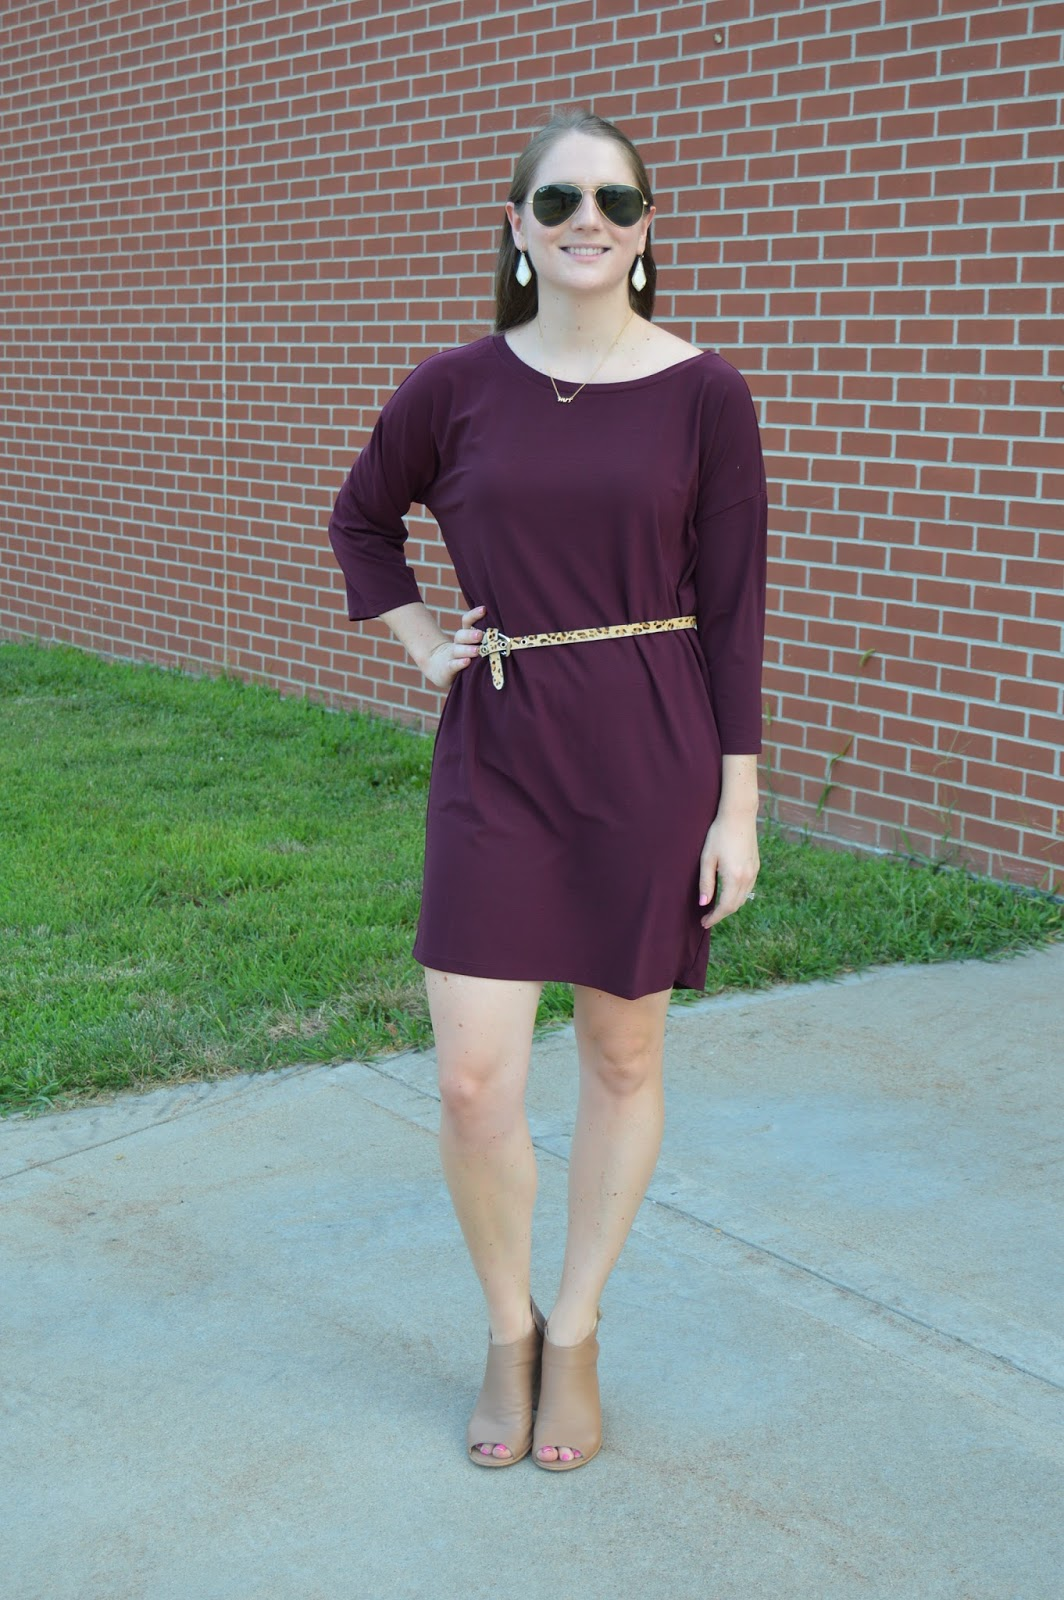 leith dolman shift dress from the nordstrom anniversary sale | how to style a shift dress | belt over a dress | summer outfit ideas | what to wear this summer | summer to fall transition outfits | cute outfits for a date night this summer | a memory of us  |